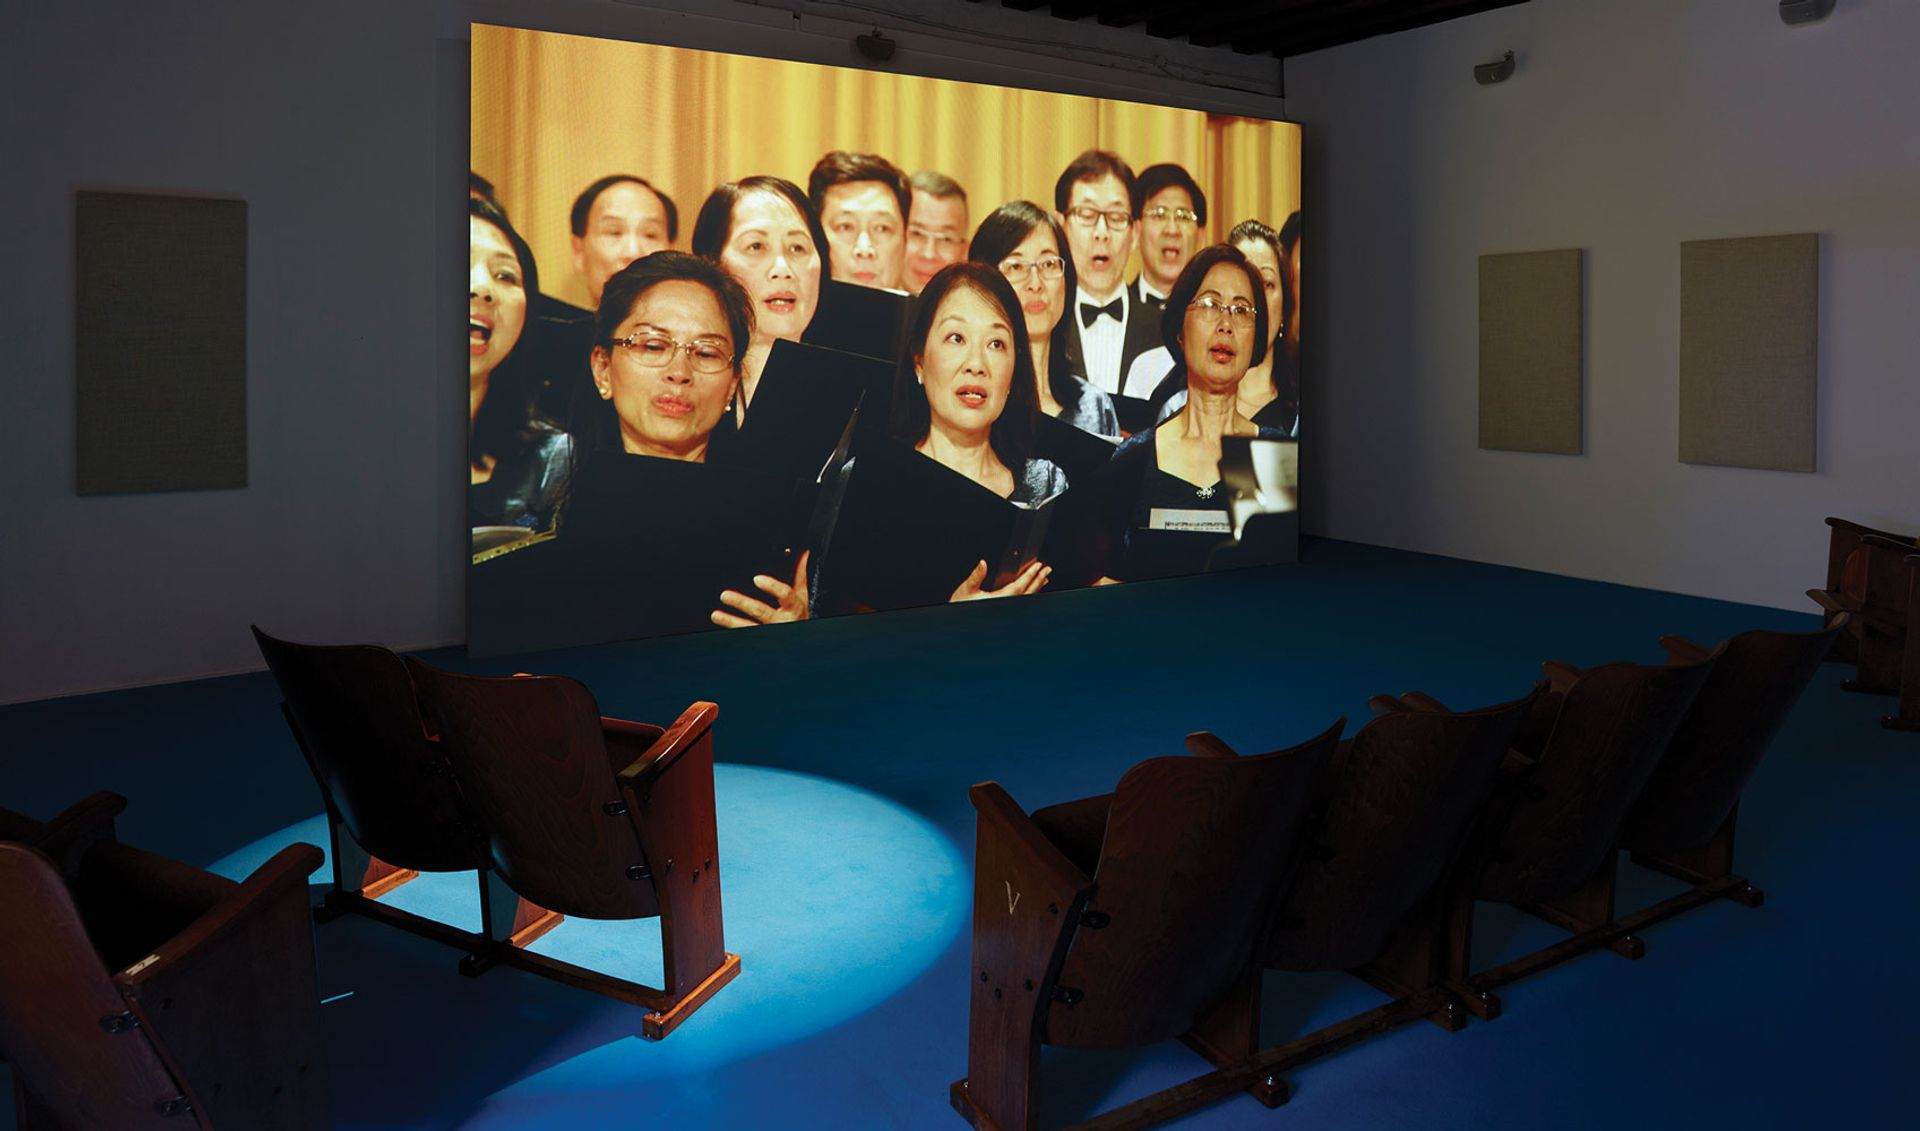 The Hong Kong Federation of Trade Unions Choir perform We are the World in Samson Young's installation Simon Vogel